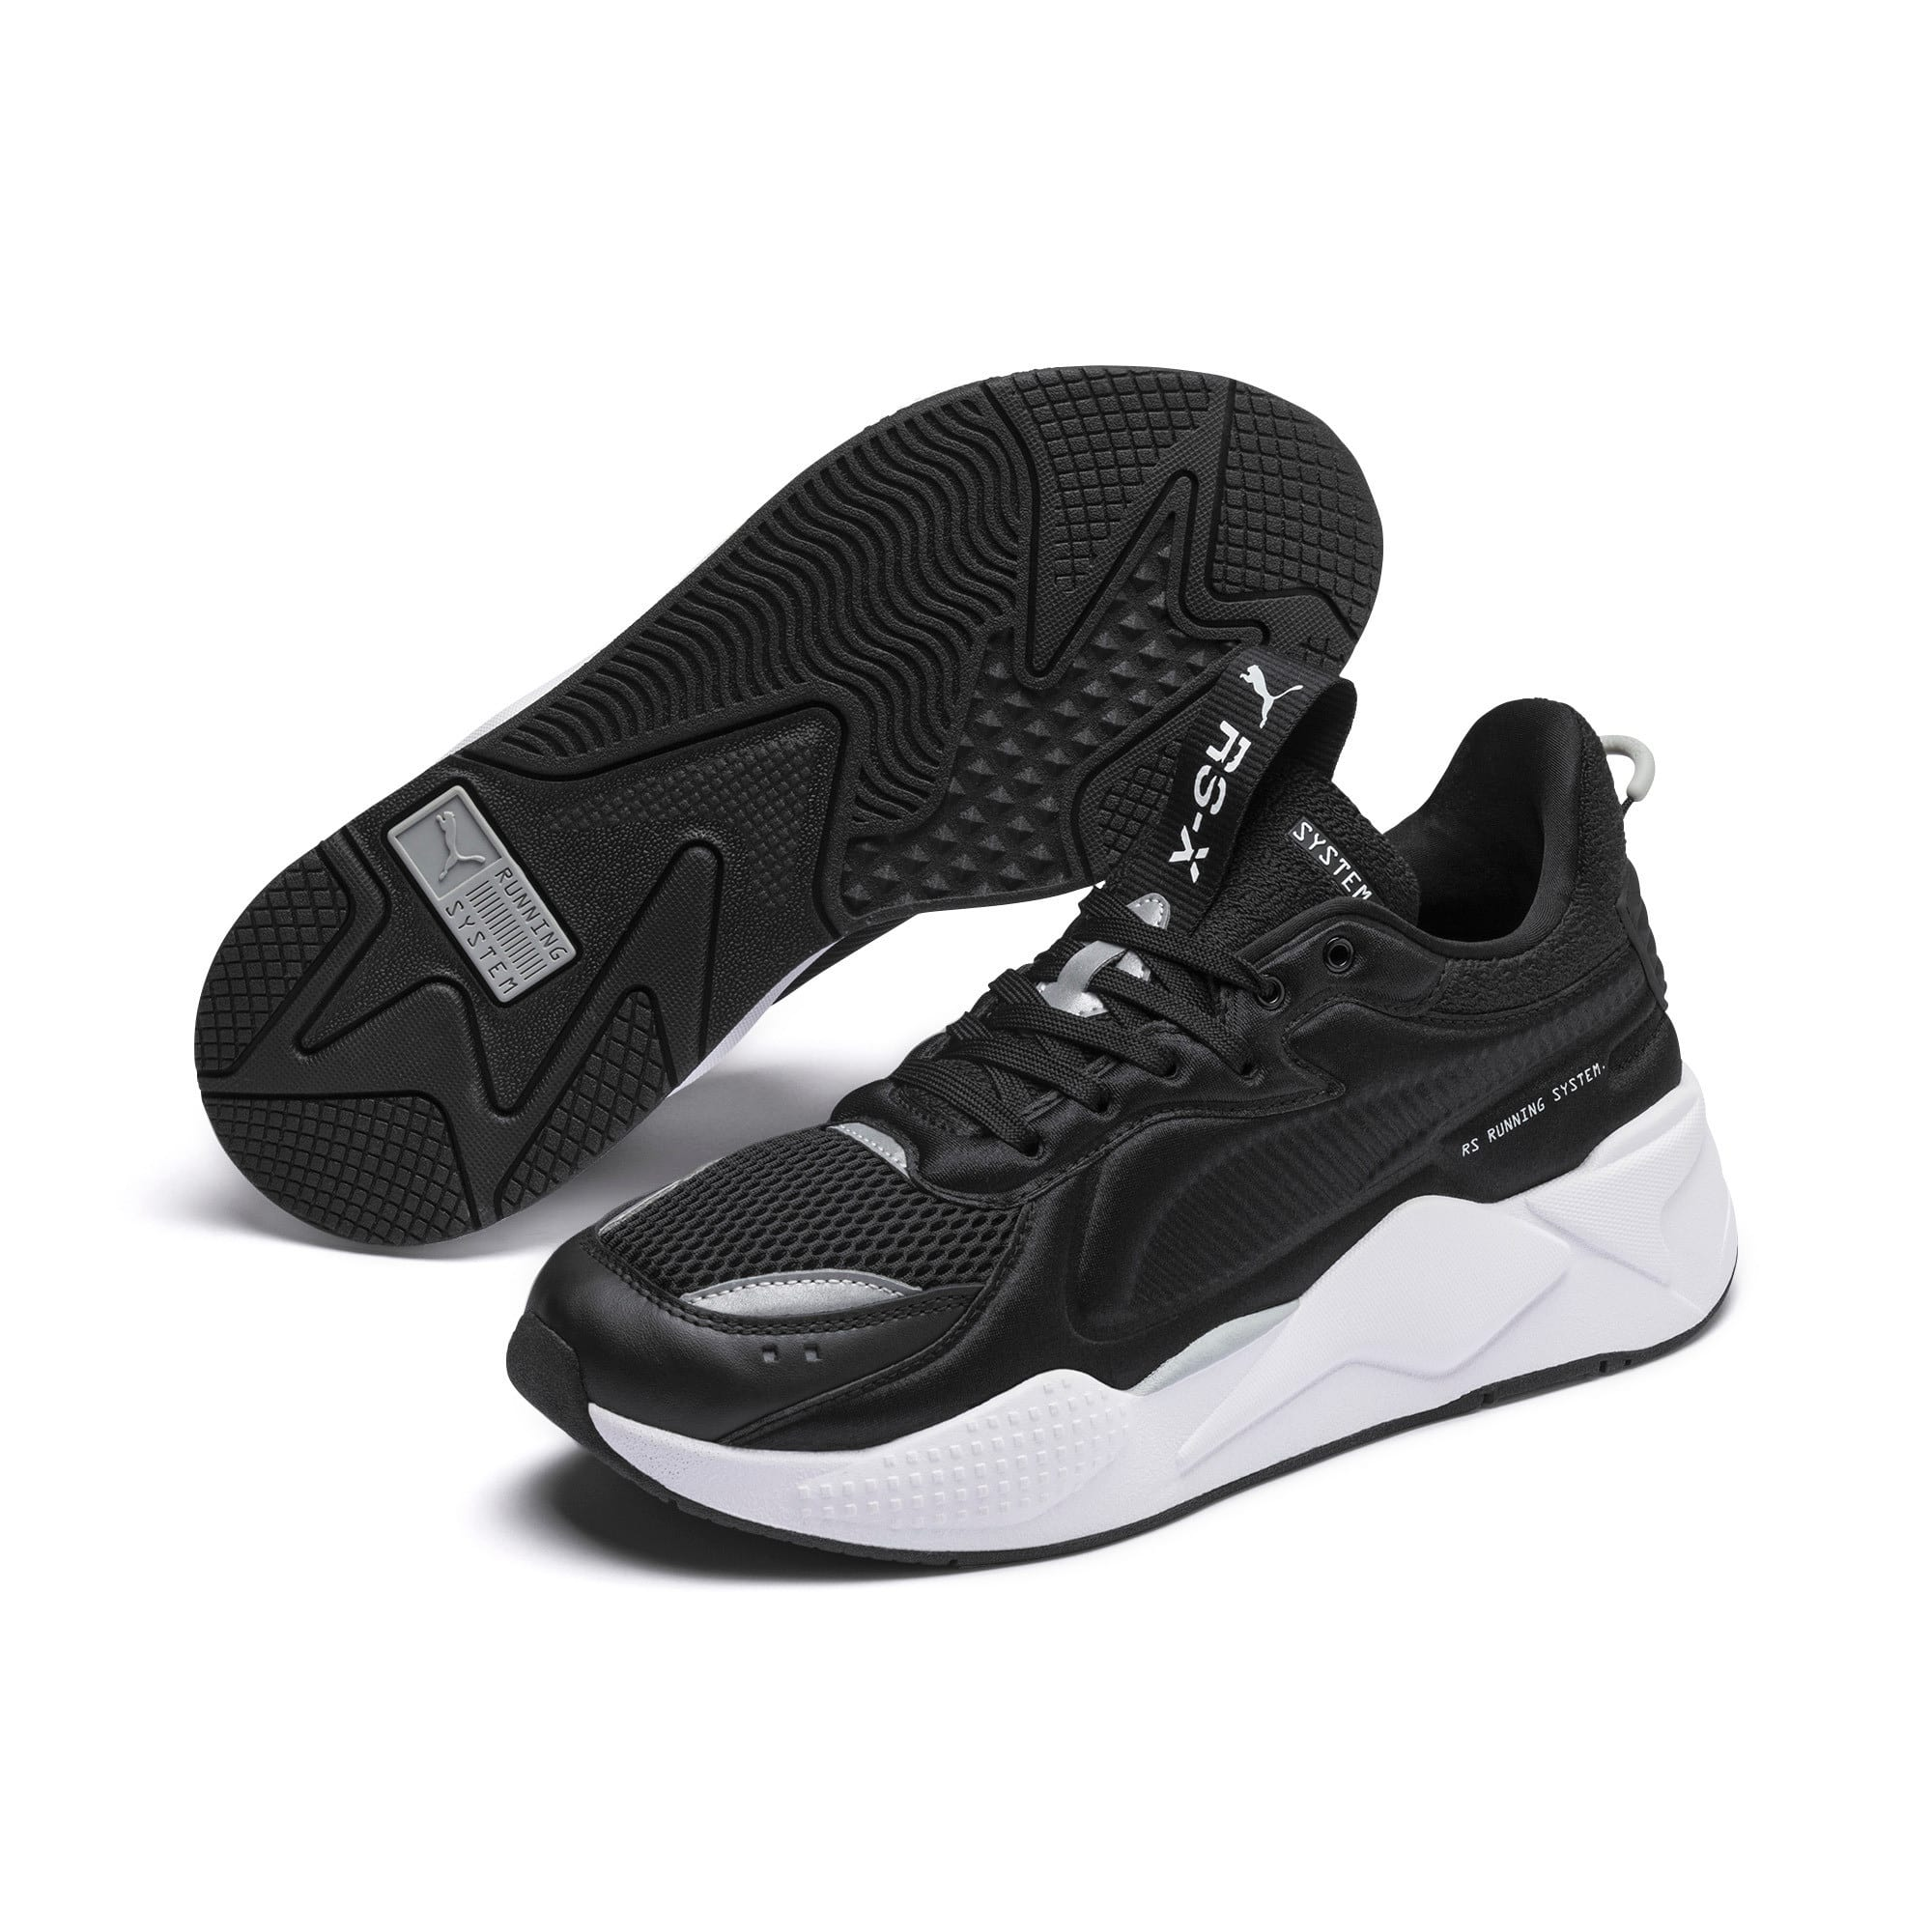 Thumbnail 3 of RS-X Softcase Trainers, Puma Black-Puma White, medium